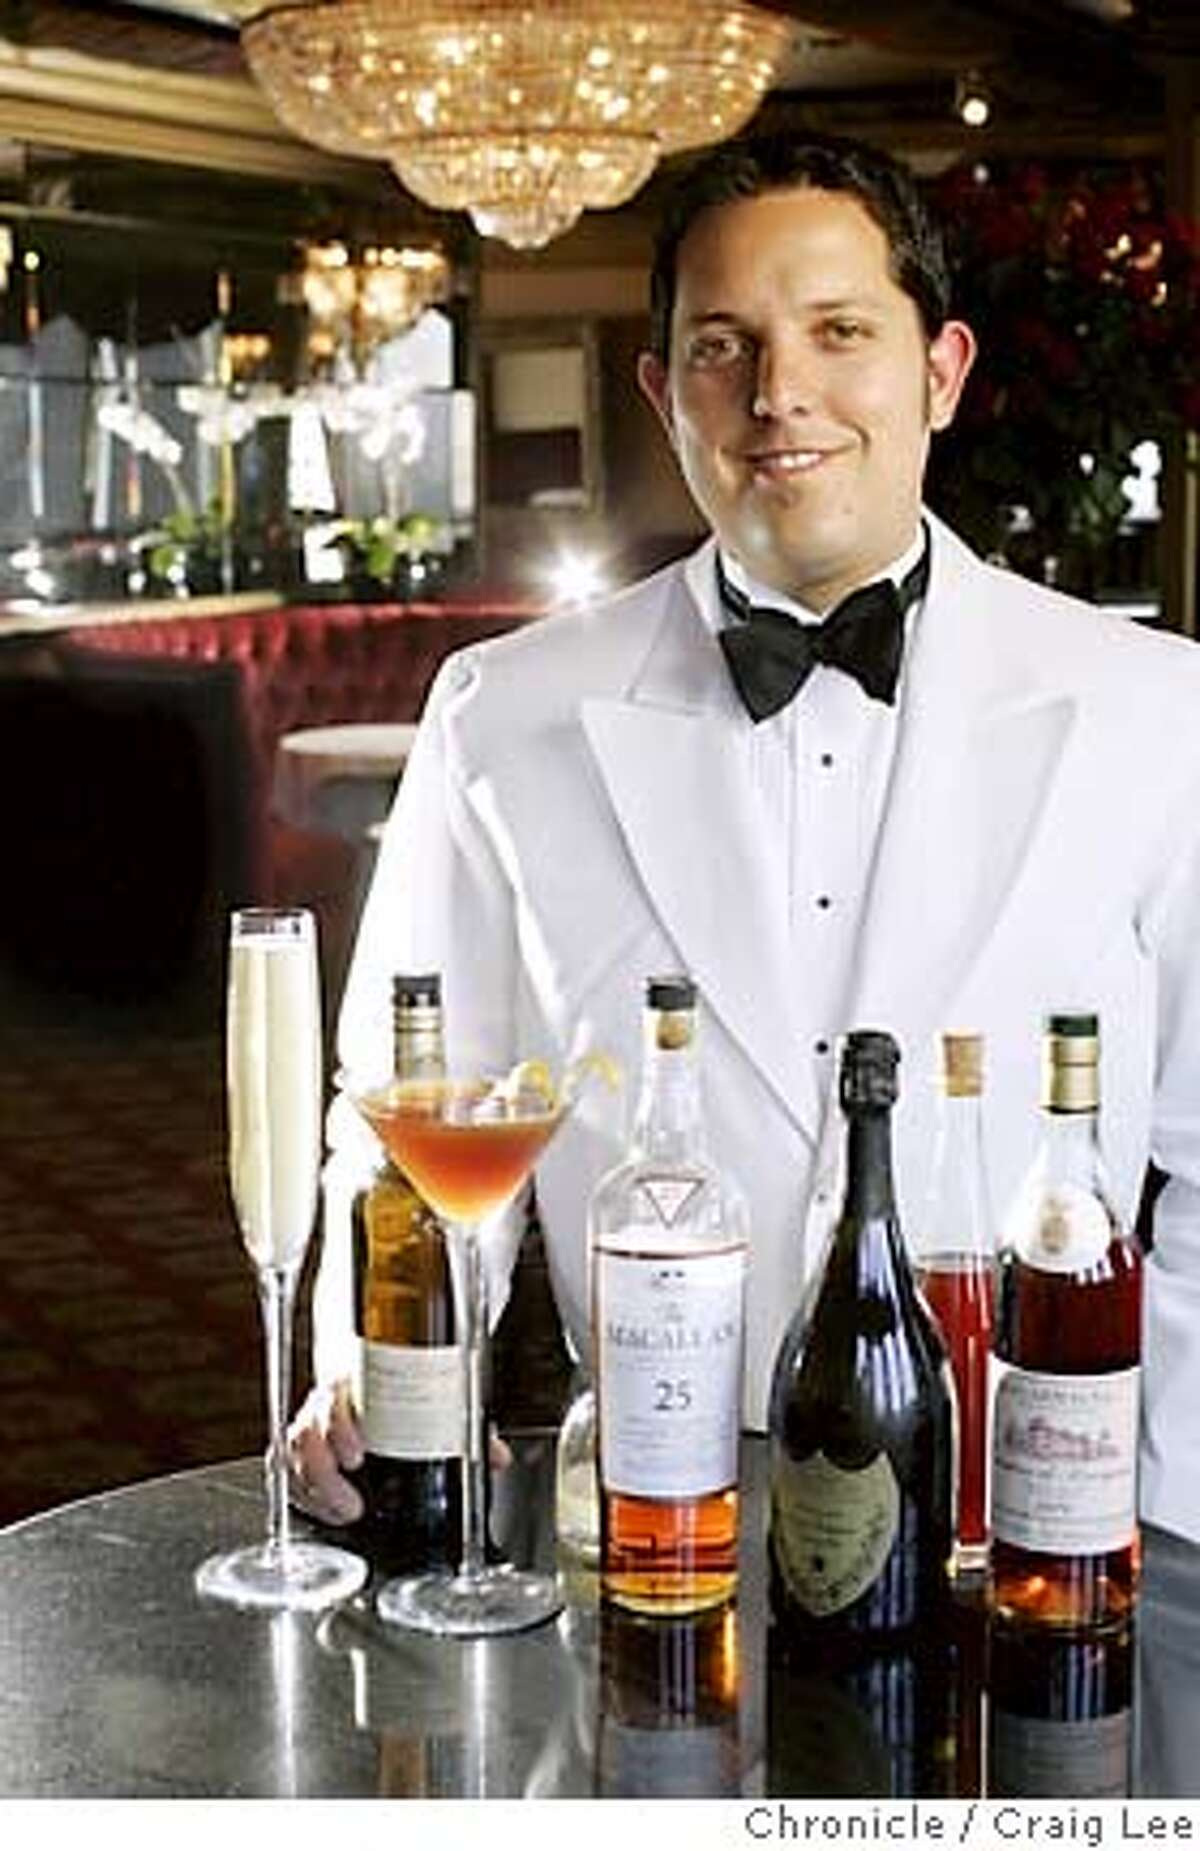 Photo of Harry Denton's Starlight Room bar manager, Jaques Bezuidenhout, with two of his newset drinks: Drinking the Stars (tall giant Champagne flute, far left), sells for $650, and the Heavenly Dram (in the martini glass) sells for $80. These drinks contain amazingly expensive ingredients like 24-year-old Macallan single-malt scotch and Dom Perignon Champagne, and people buy them. Event on 8/5/05 in San Francisco. Craig Lee / The Chronicle